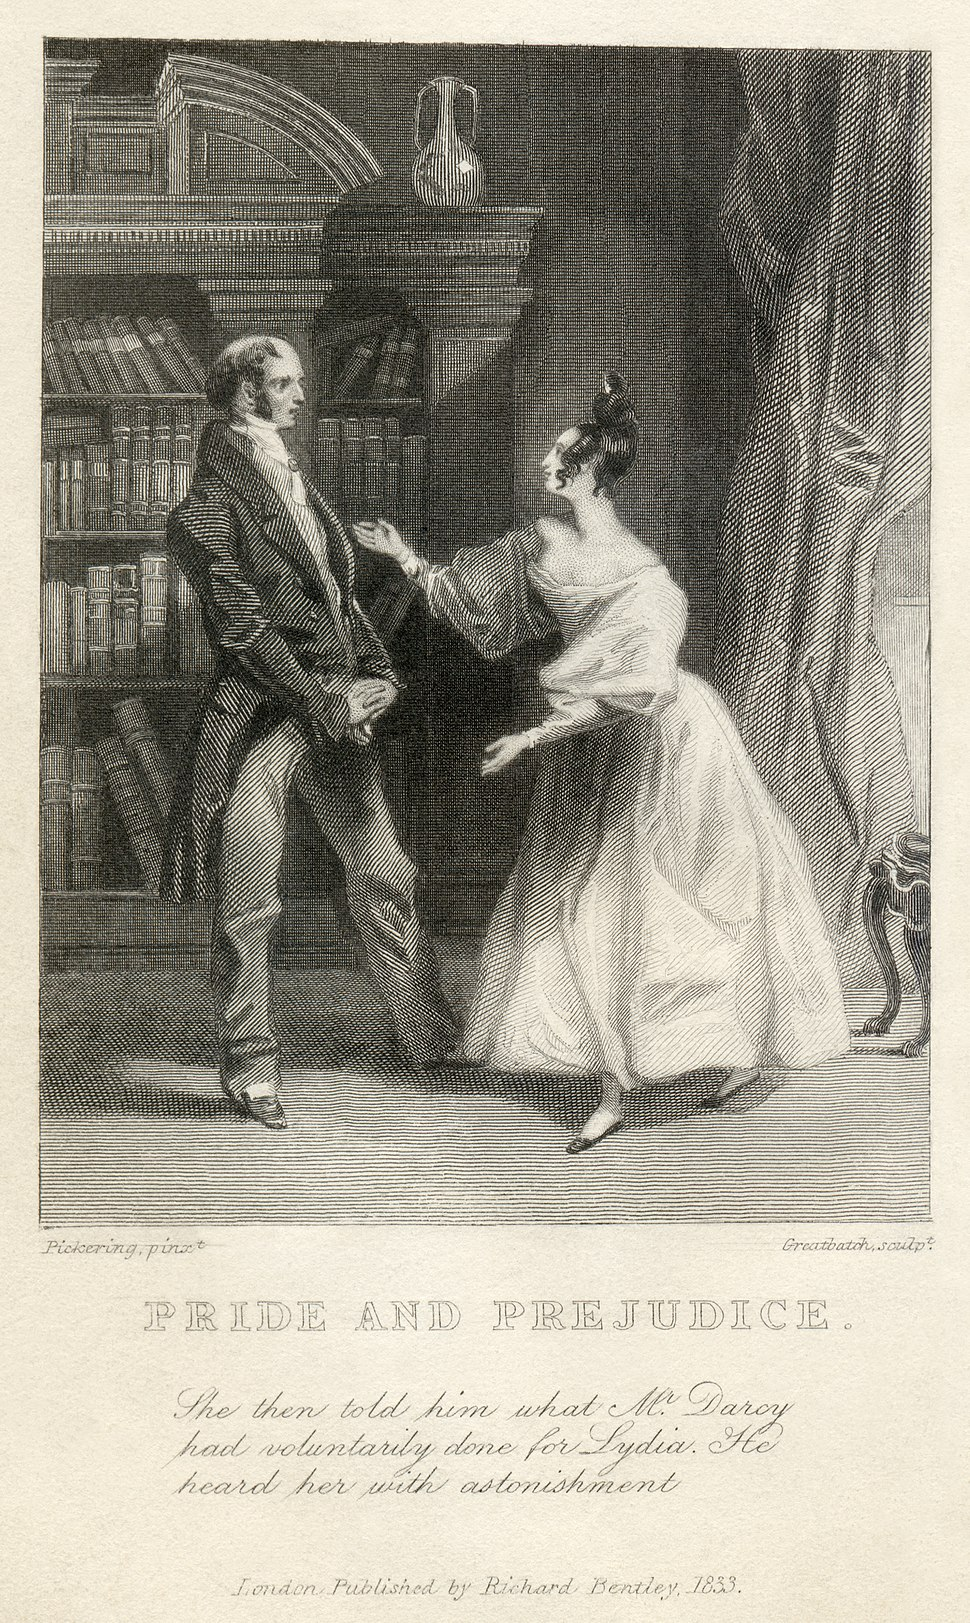 Pickering - Greatbatch - Jane Austen - Pride and Prejudice - She then told him what Mr. Darcy had voluntarily done for Lydia